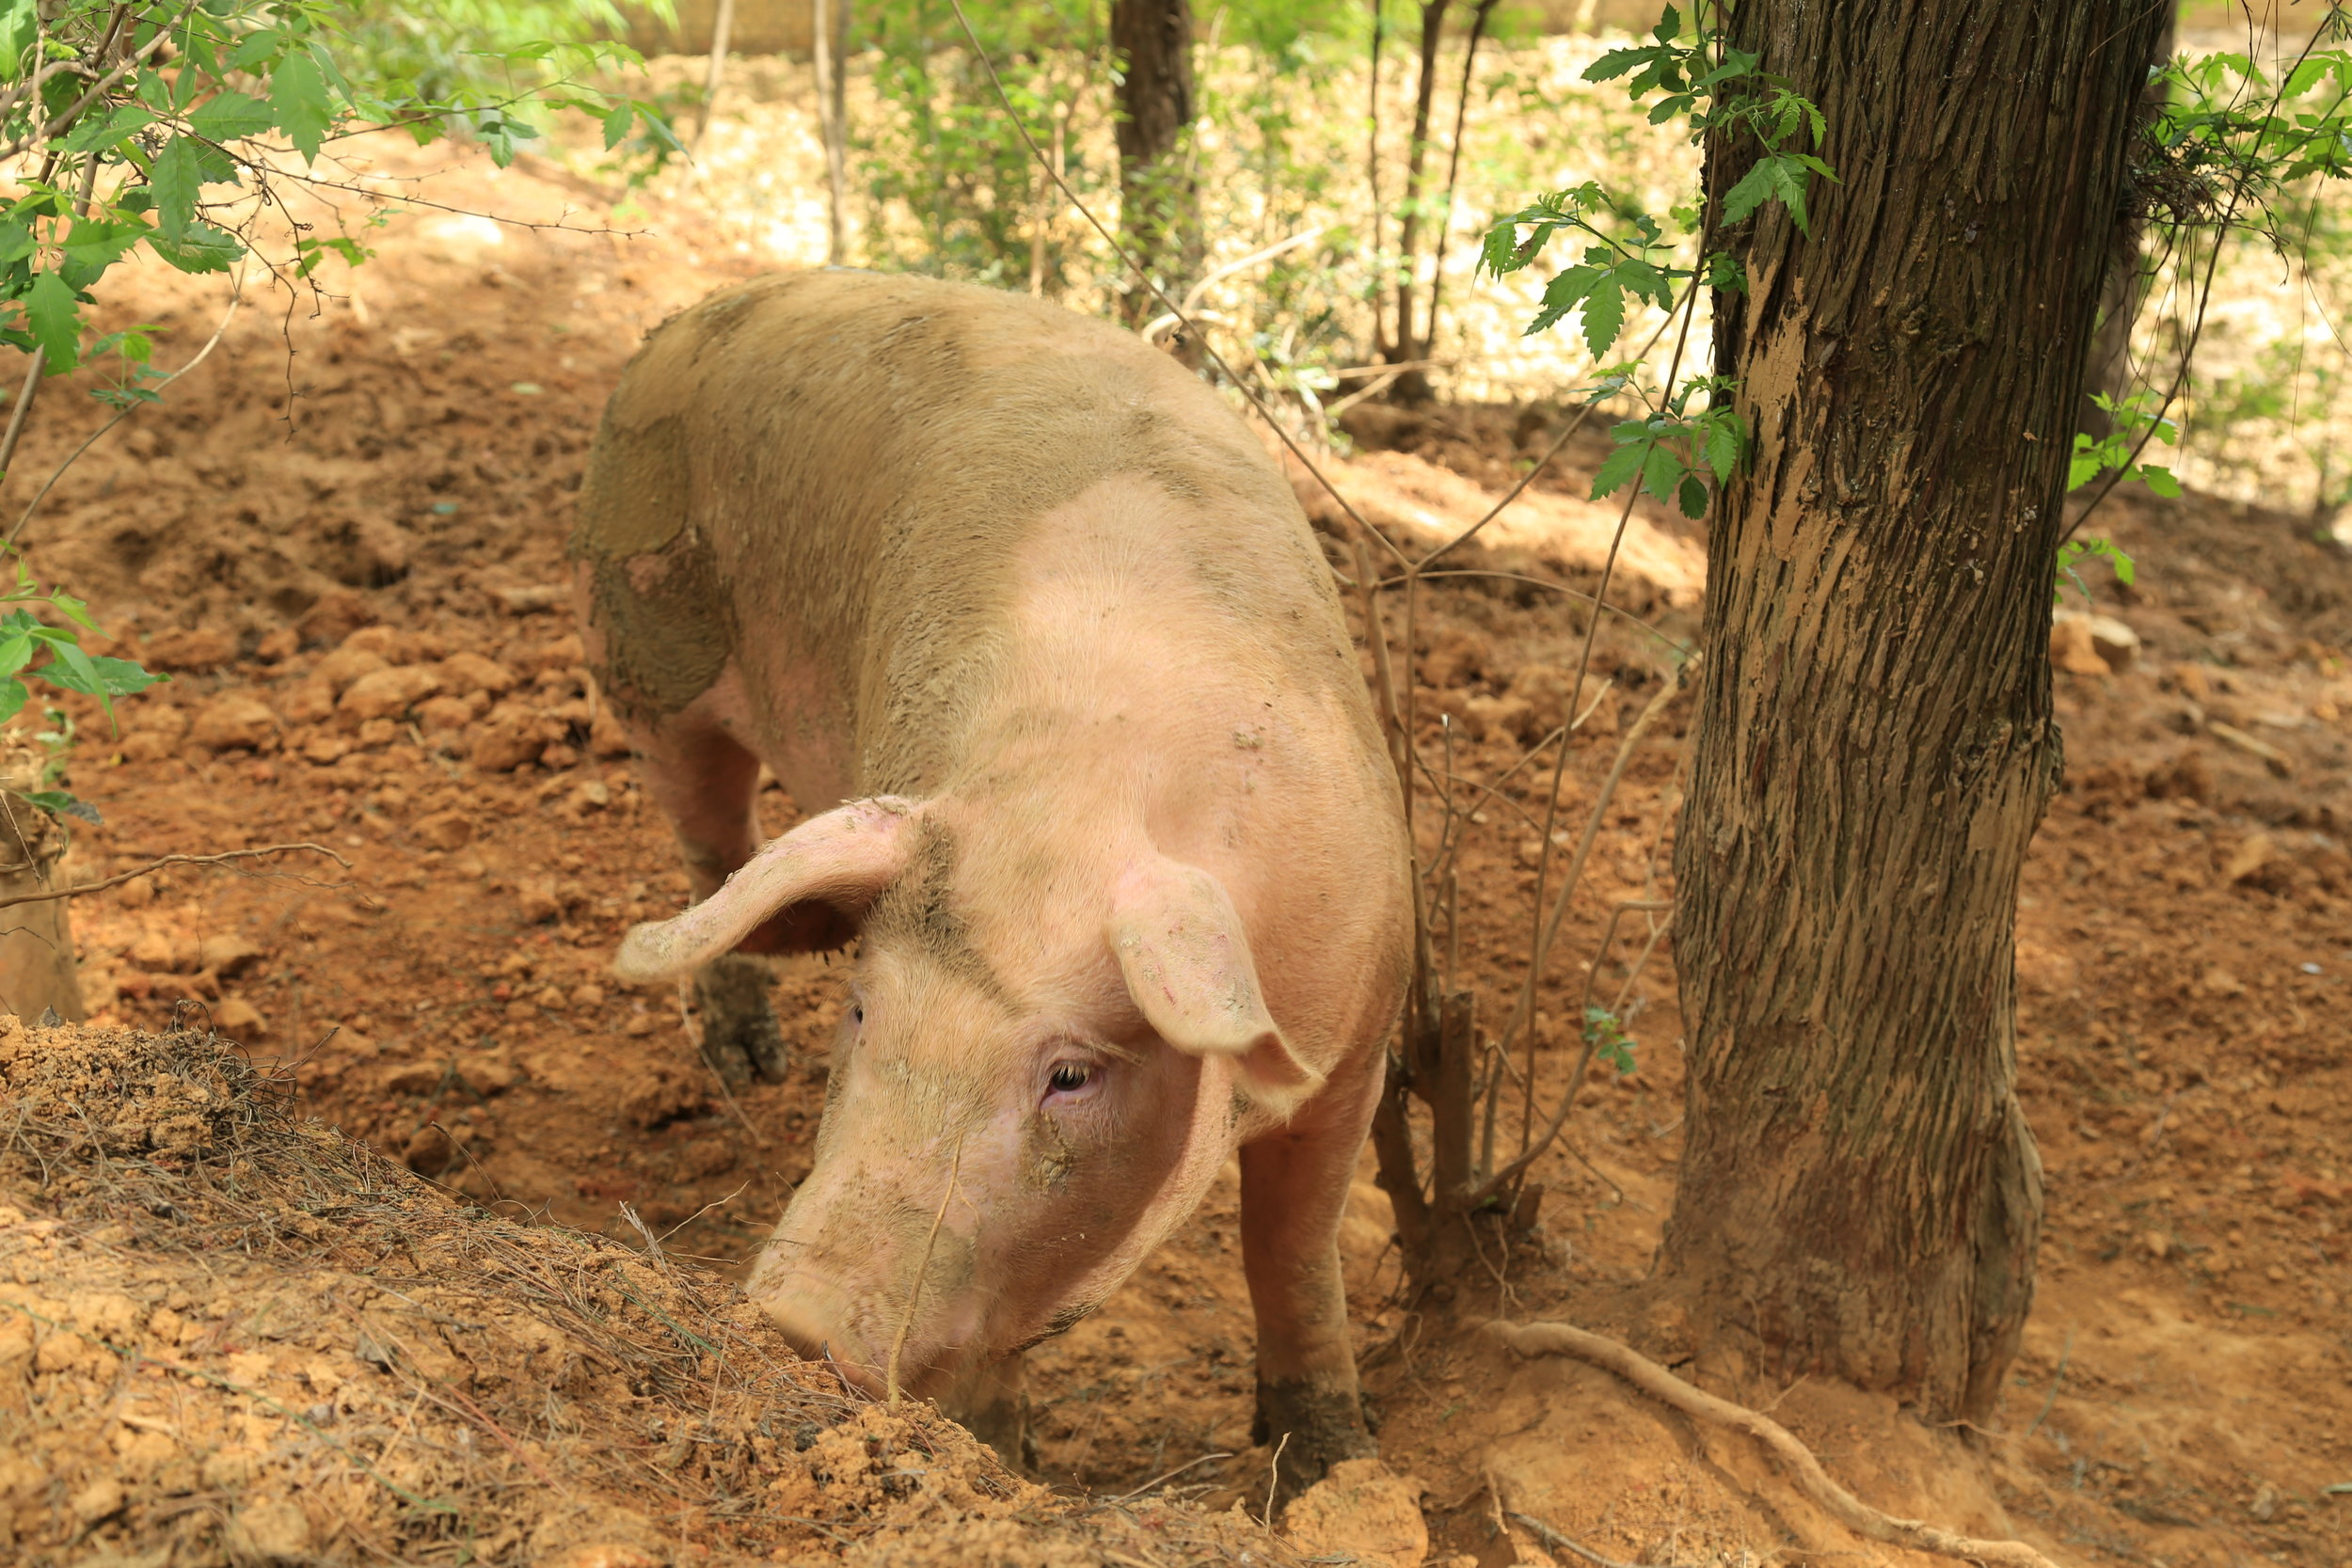 Our free-range pigs are very healthy and give us good quality meat.